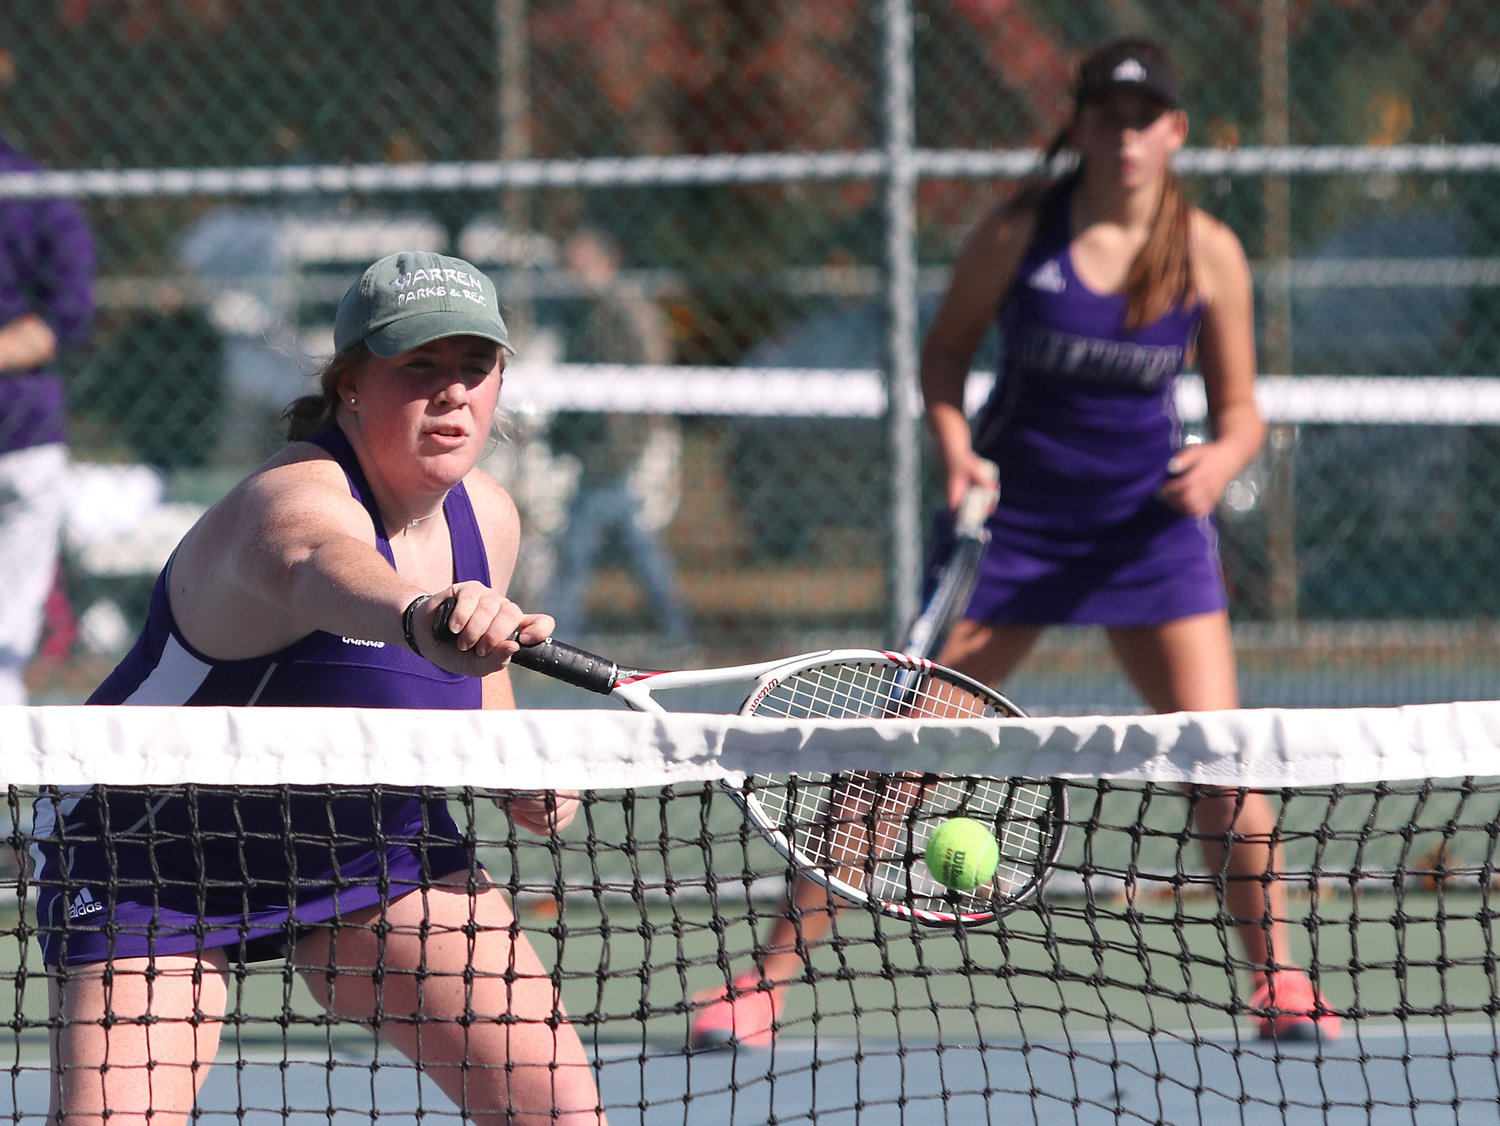 Elle Kopecky (left) hits a volley at the net with No. 1 doubles partner Annie Kryzwicki.